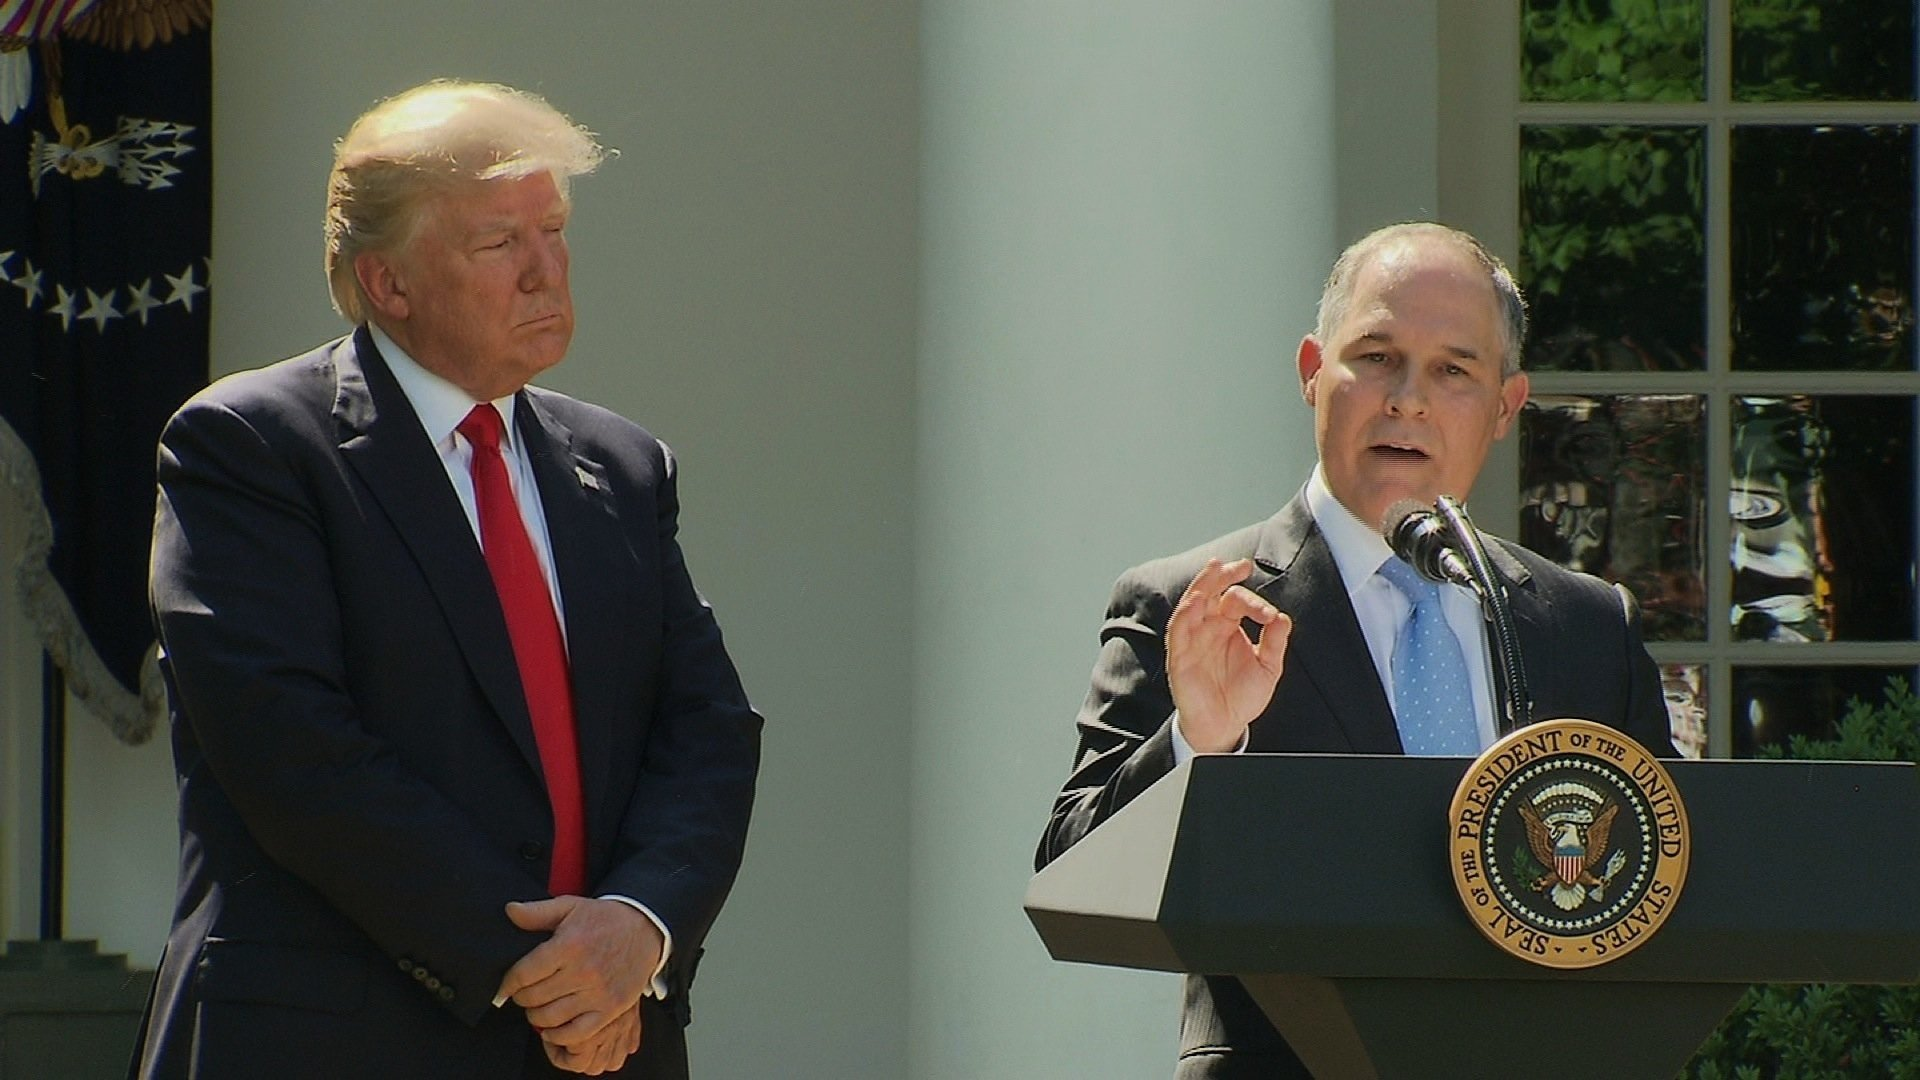 Democrats say it's time for Pruitt to be out as EPA chief